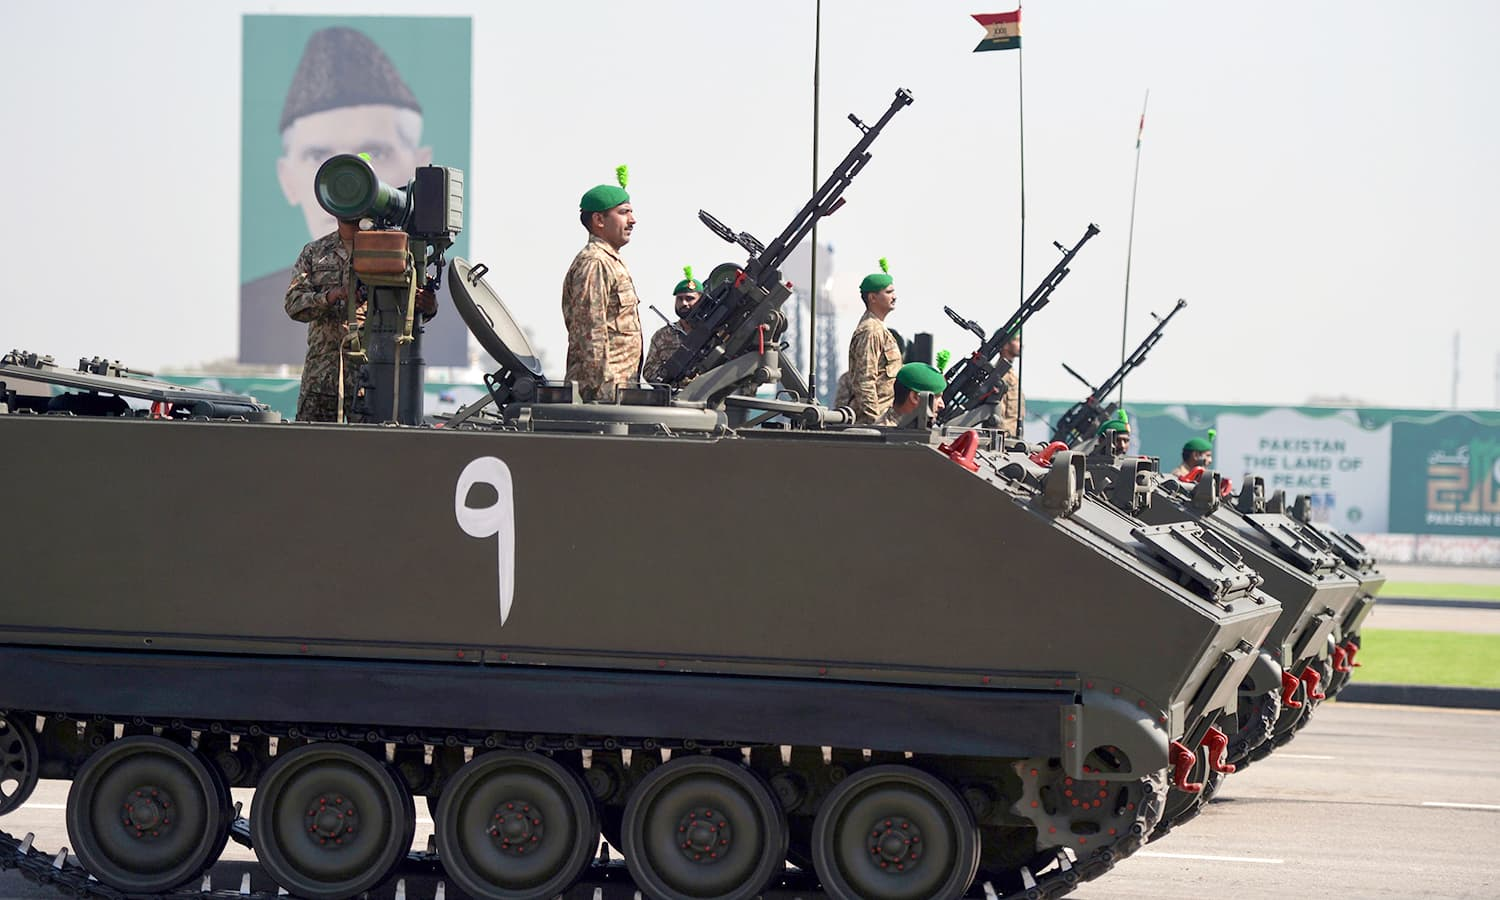 Tank crews steer their vehicles during the Pakistan Day military parade in Islamabad. ─AFP